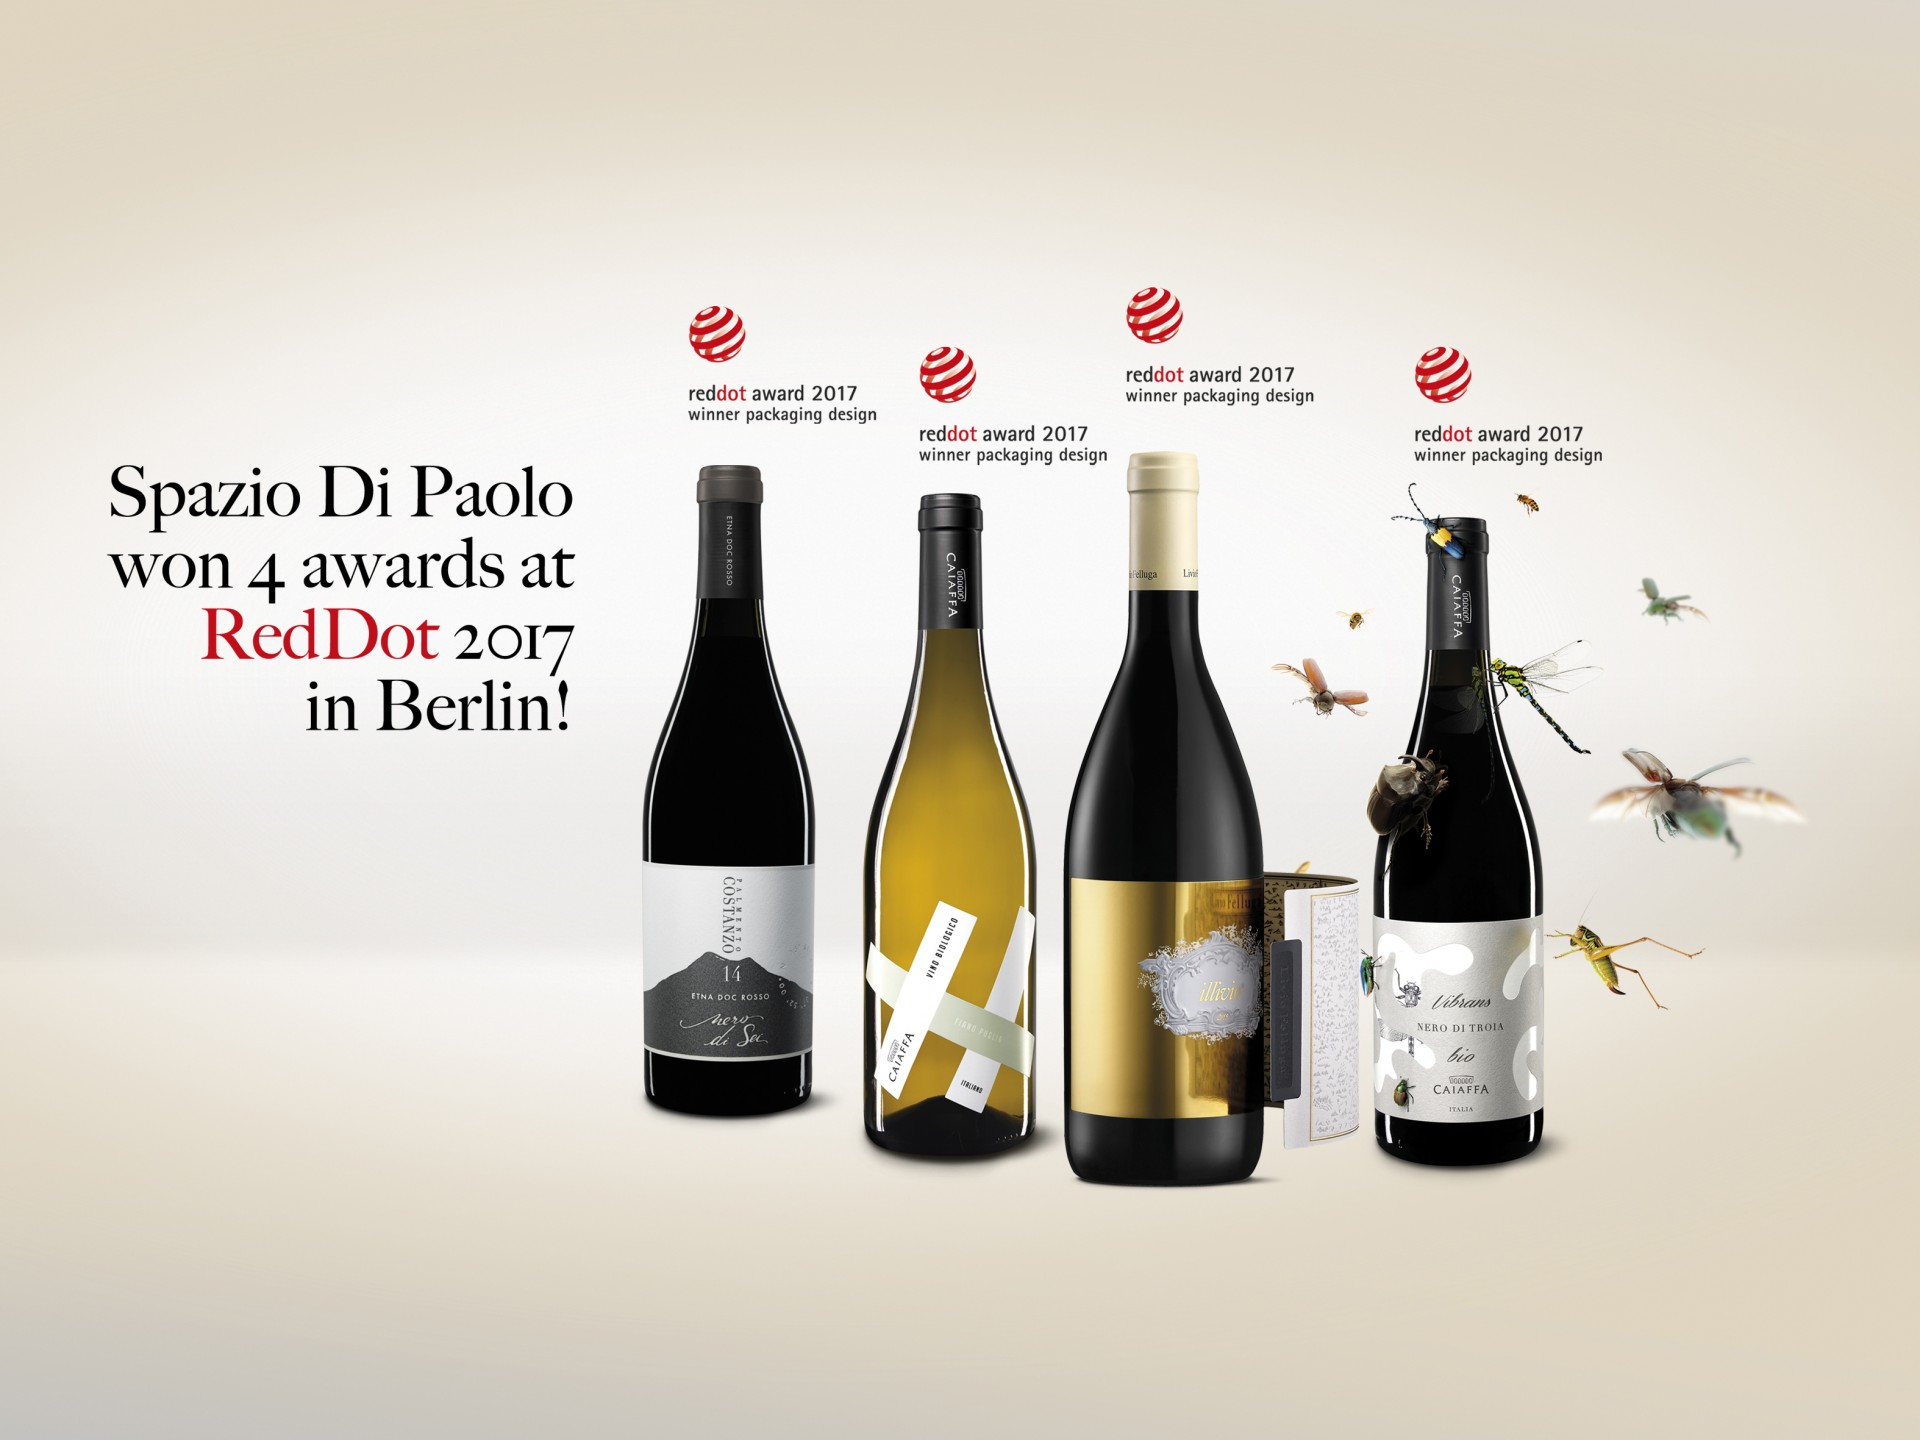 REDDOT-AWARDS-PACKAGING-SPAZIO-DI-PAOLO